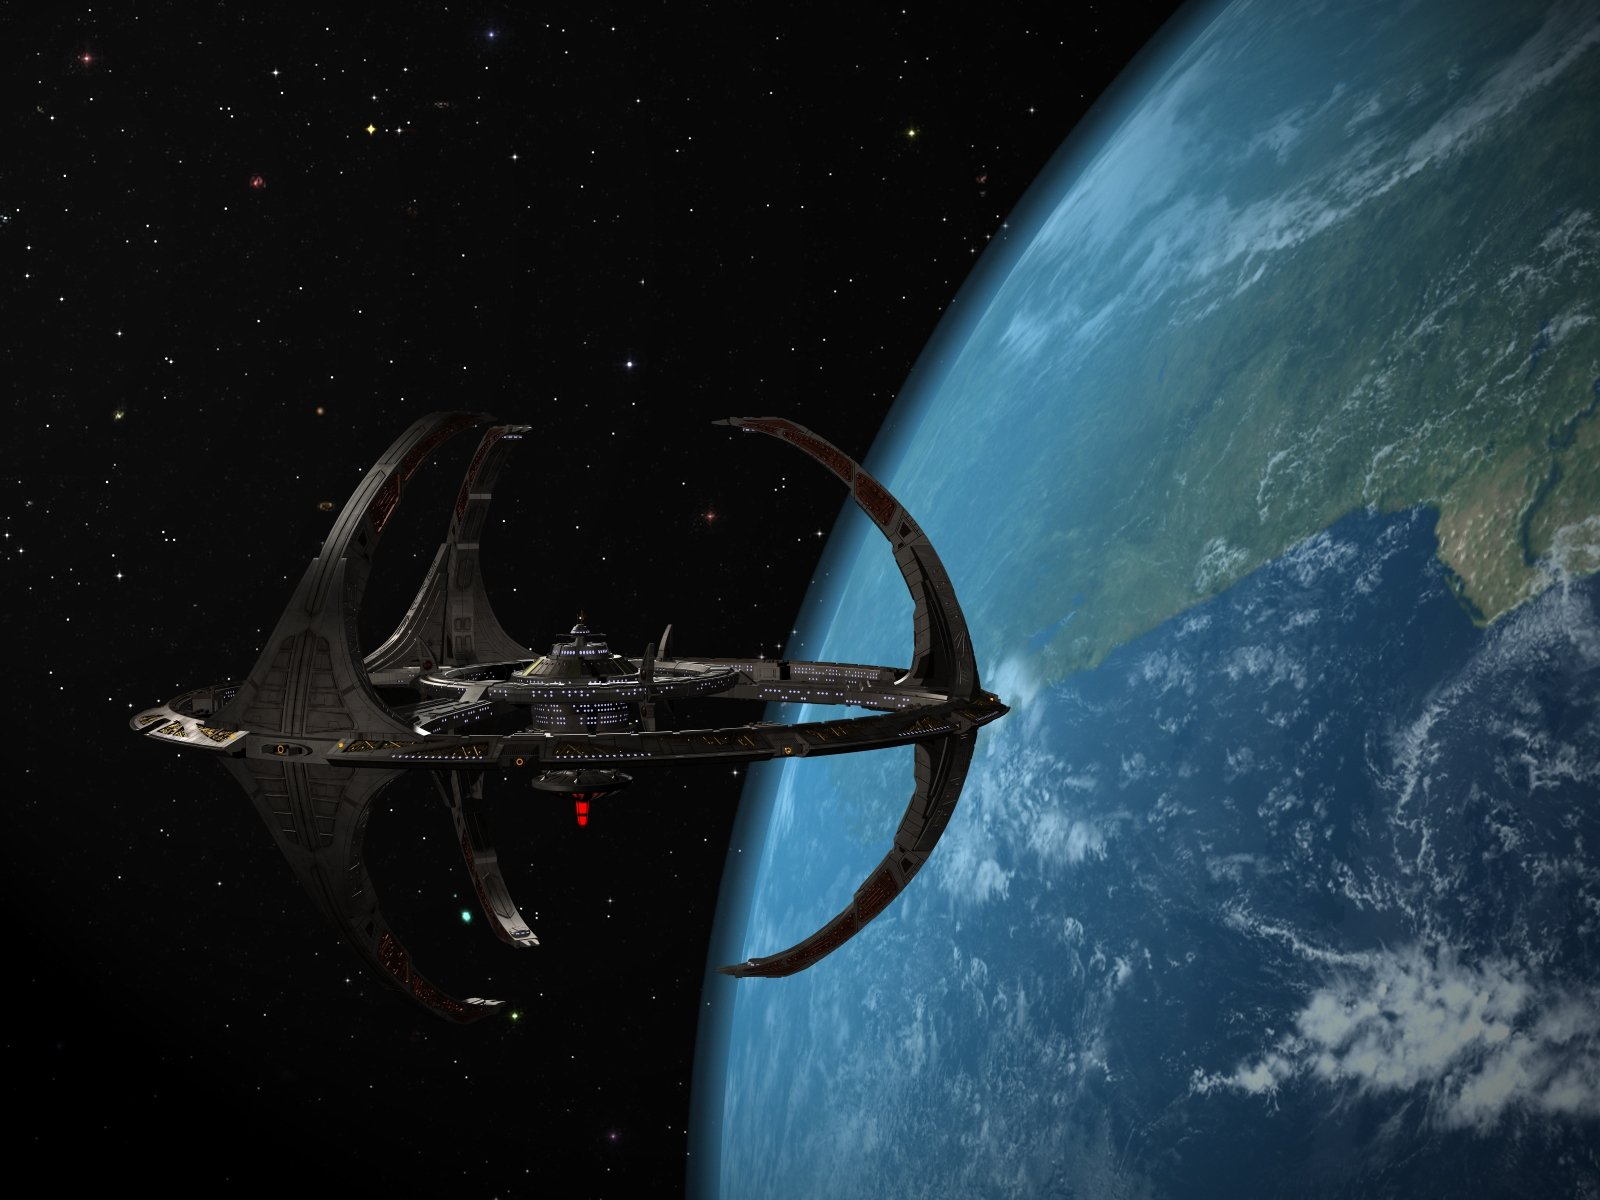 DEEP SPACE NINE Star Trek futuristic television sci fi spaceship 32 1600x1200